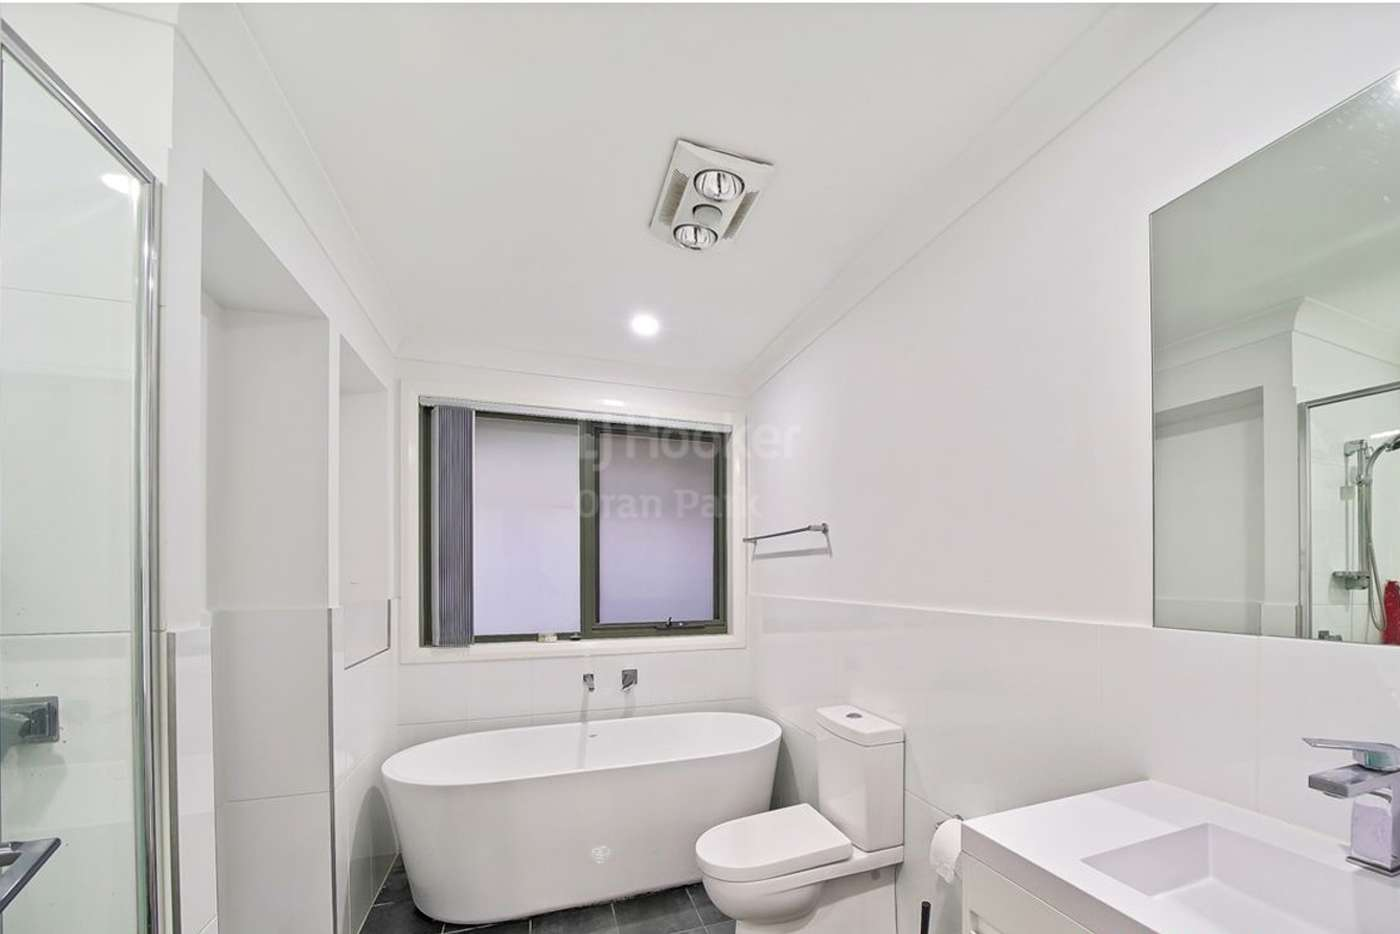 Sixth view of Homely house listing, 11 Sowerby Street, Oran Park NSW 2570